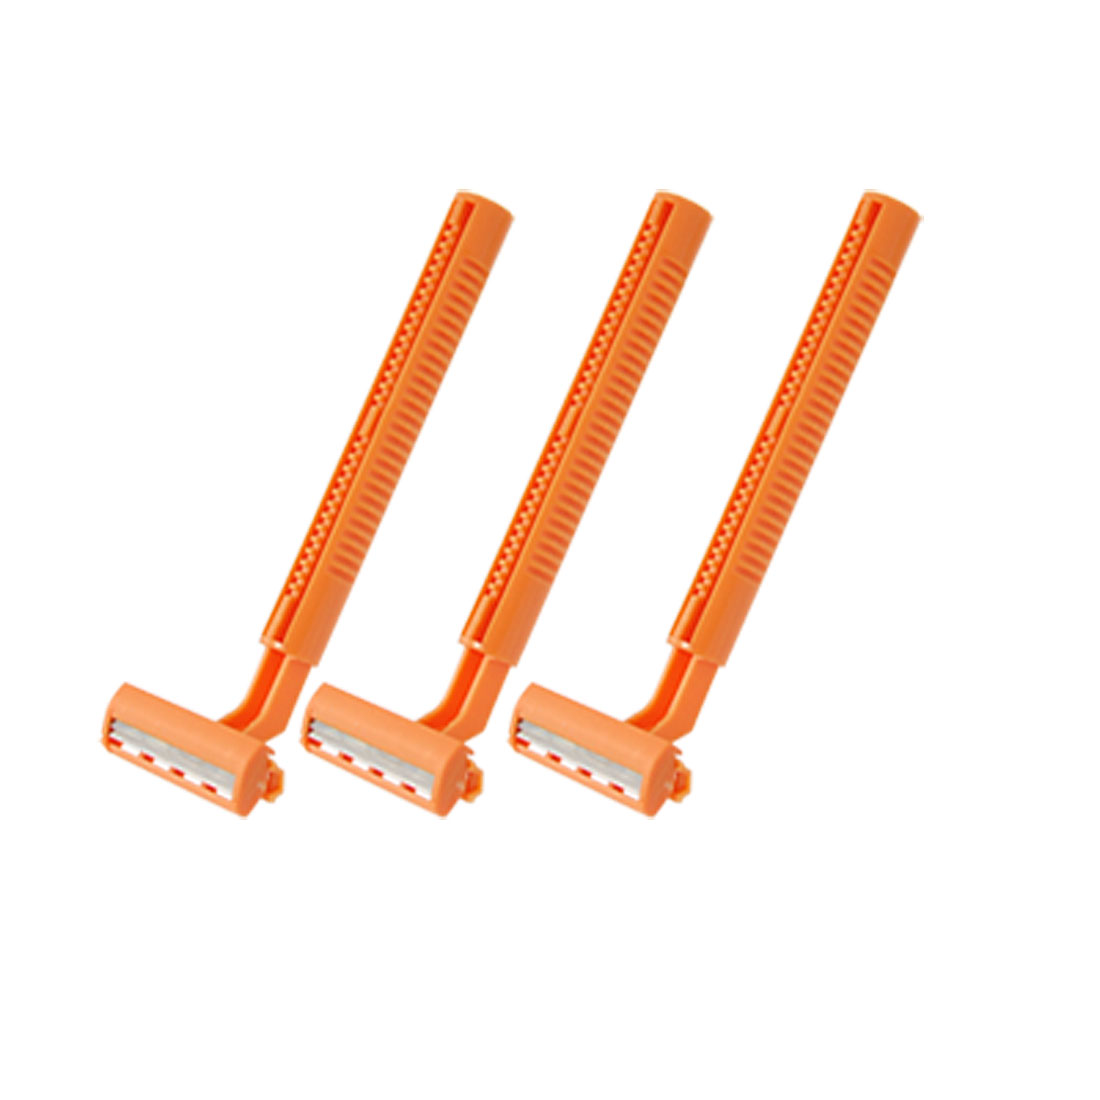 Orange Handle T Shaped Body Hair Removal Trimmer Razor 3 Pcs